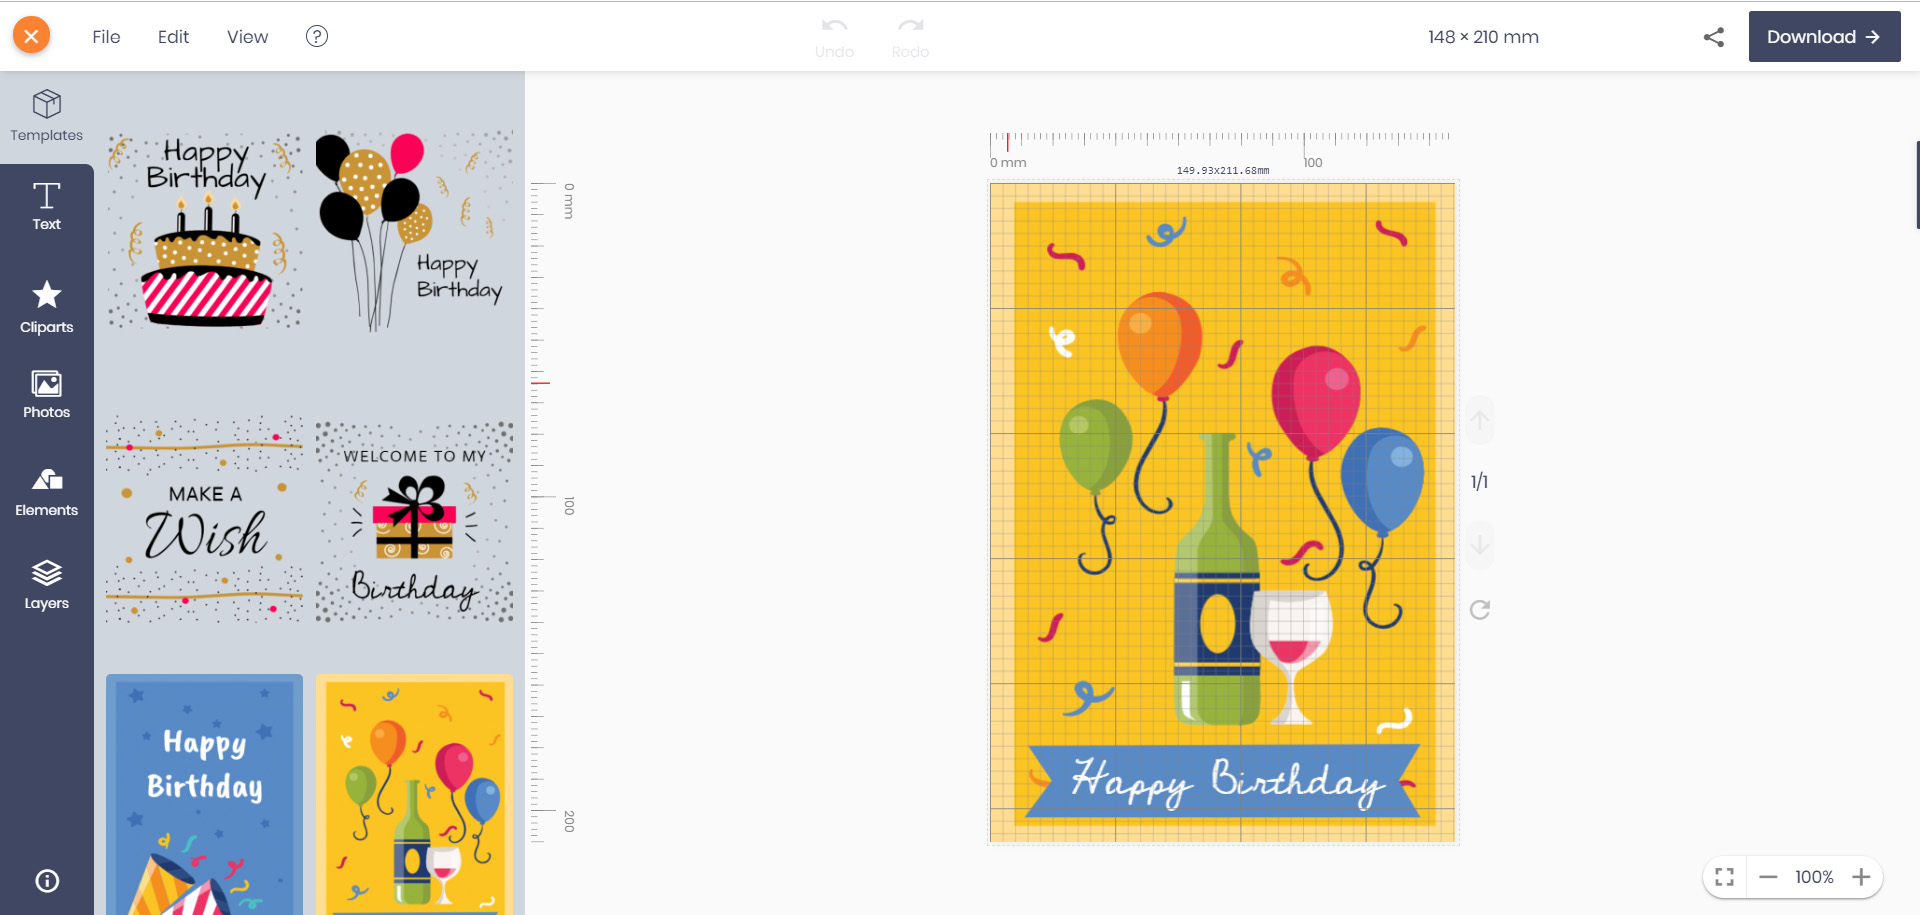 Online watermark creator clipart banner library download Free Online Birthday Card Maker - No Registration - No ... banner library download